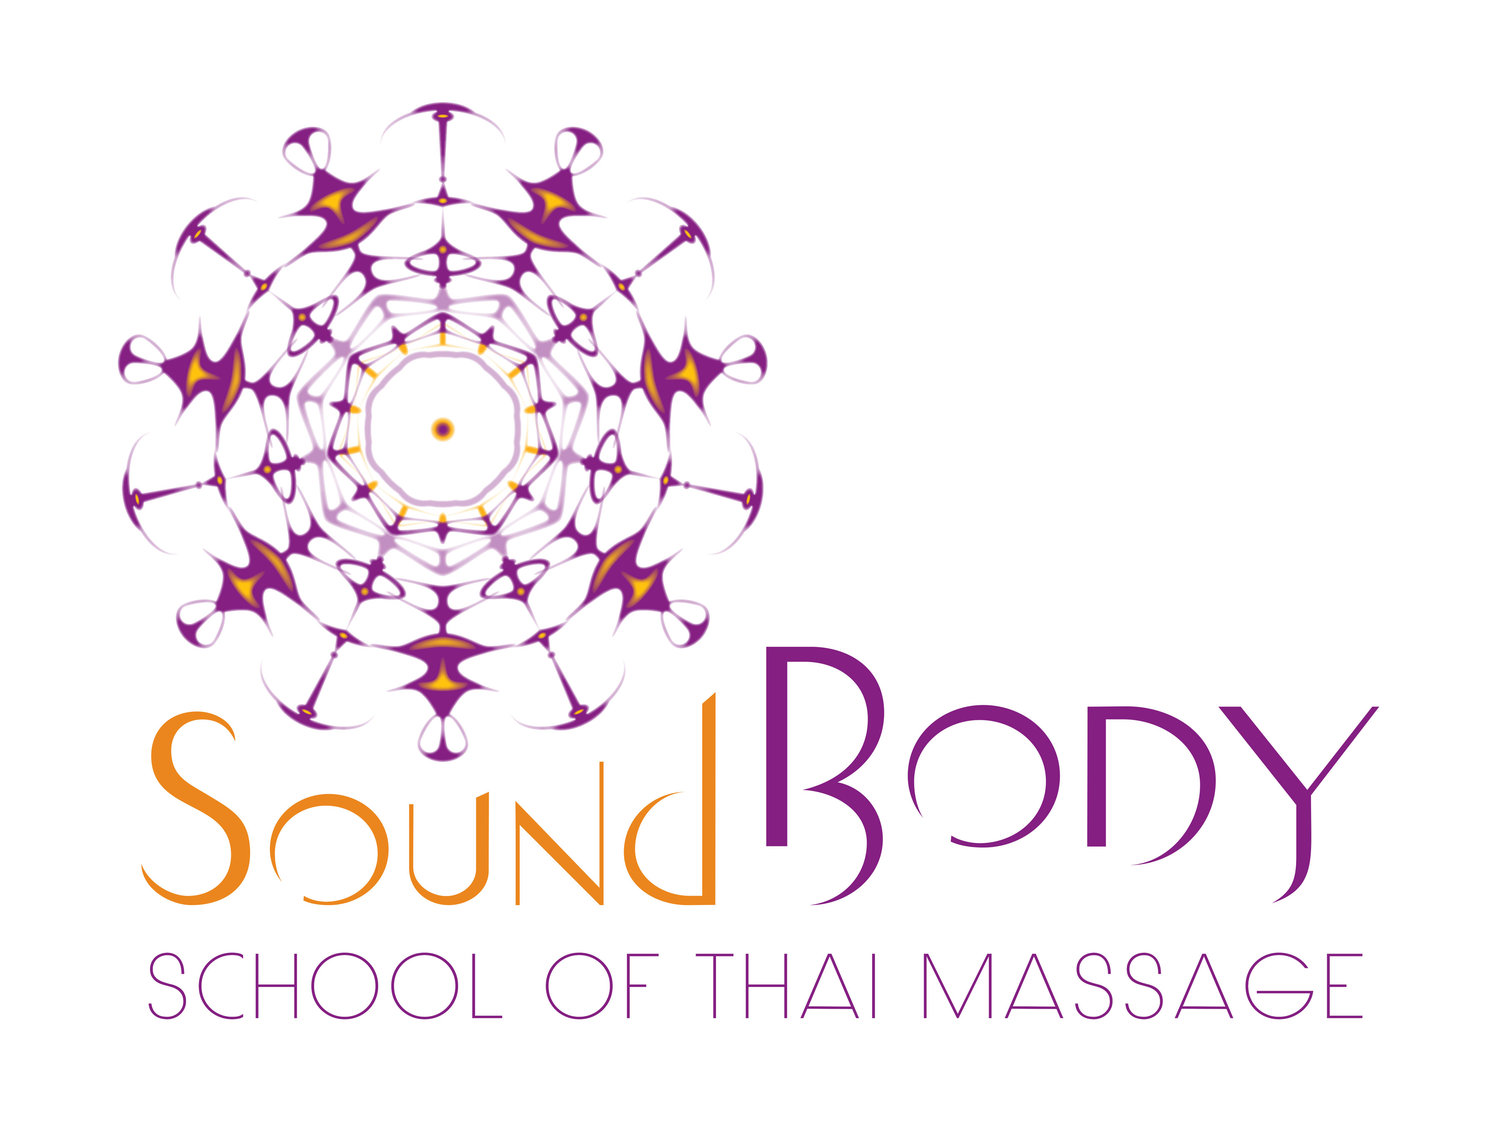 Sound Body School of Thai